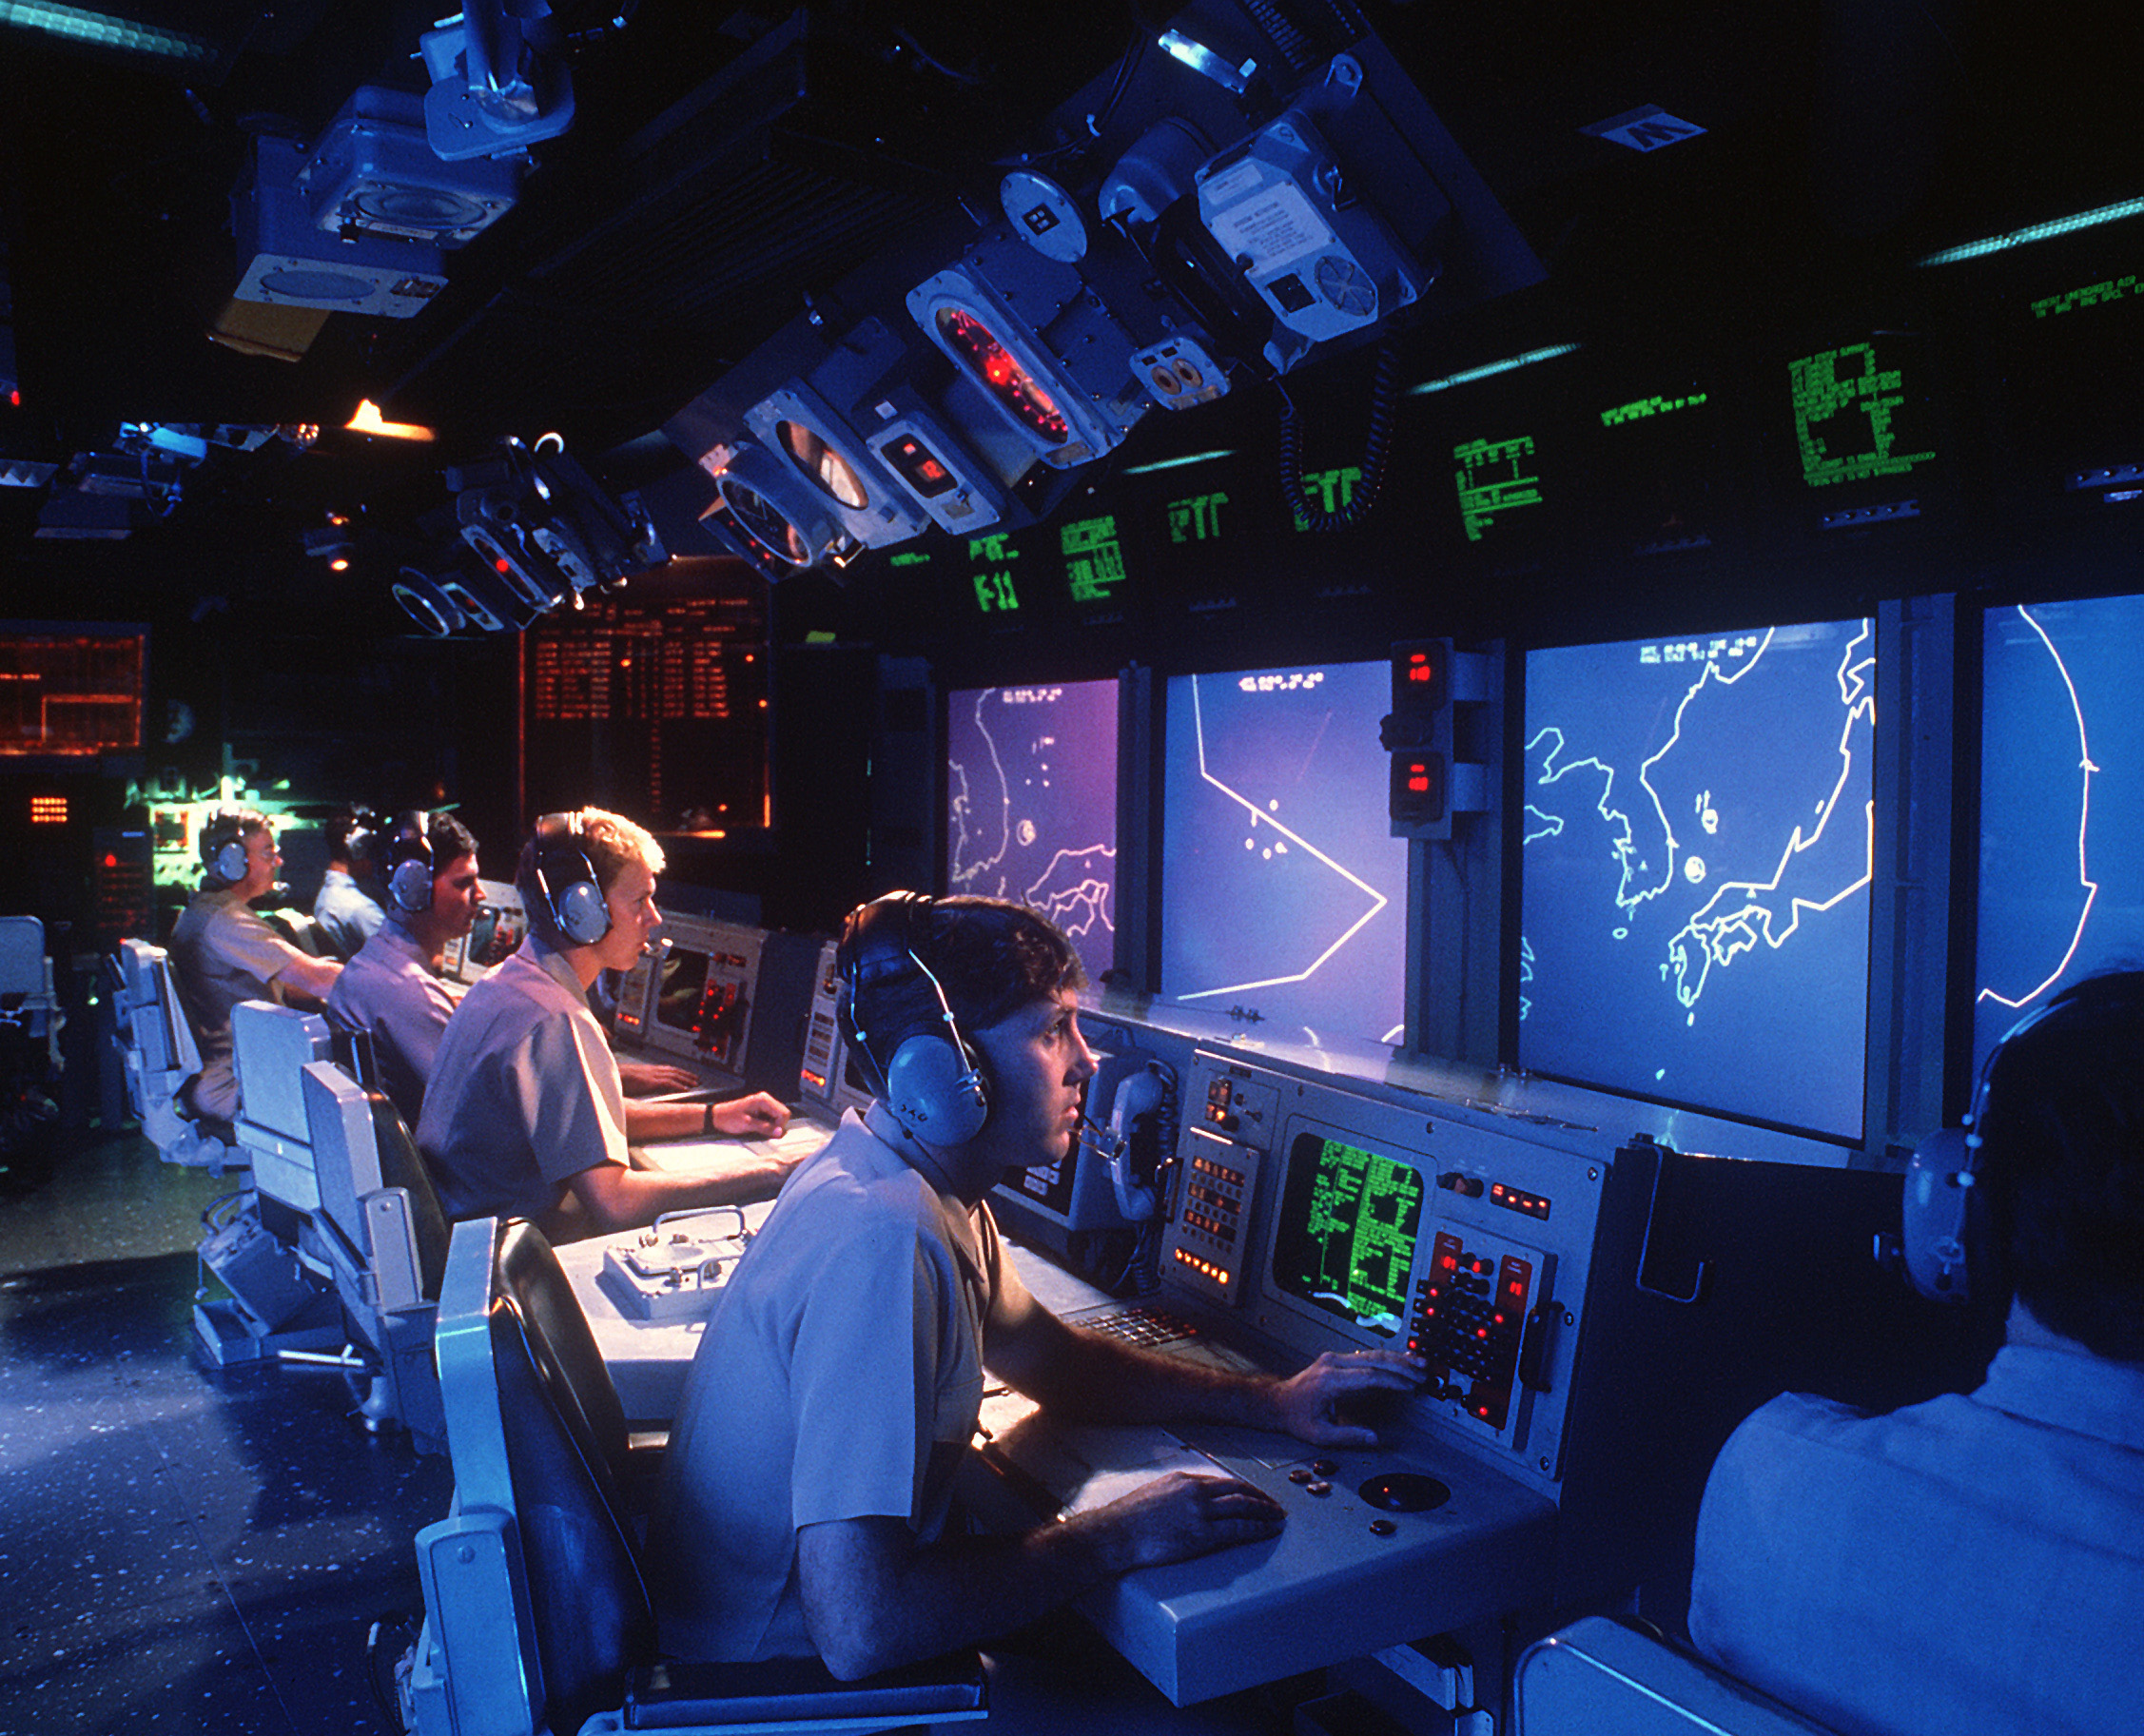 USS_Vincennes_%28CG-49%29_Aegis_large_screen_displays.jpg?uselang=ru